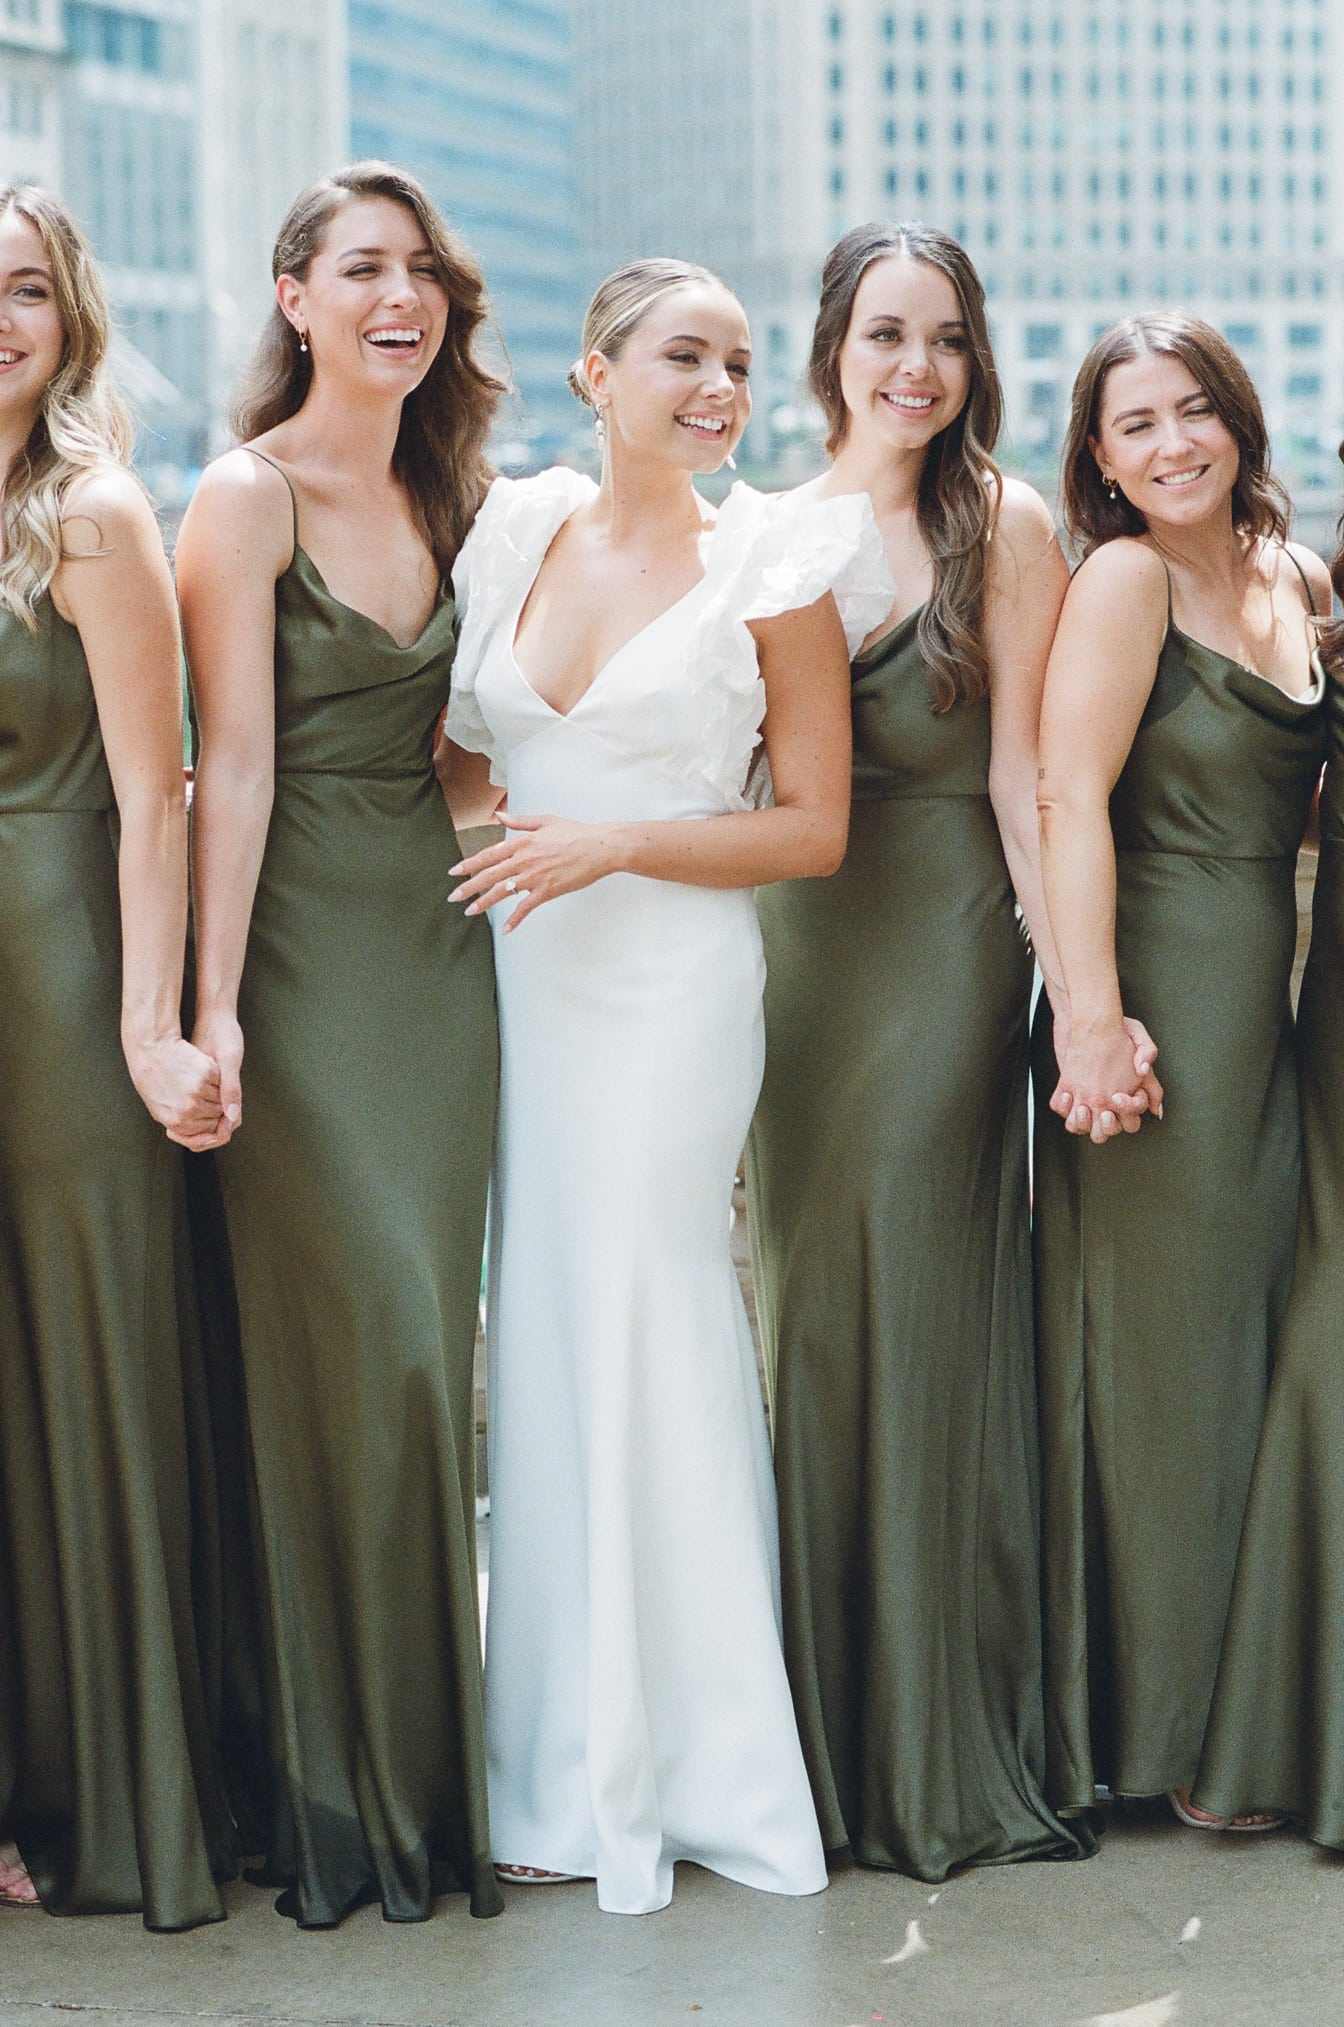 Bride with her bridesmaids at Chicago Wedding